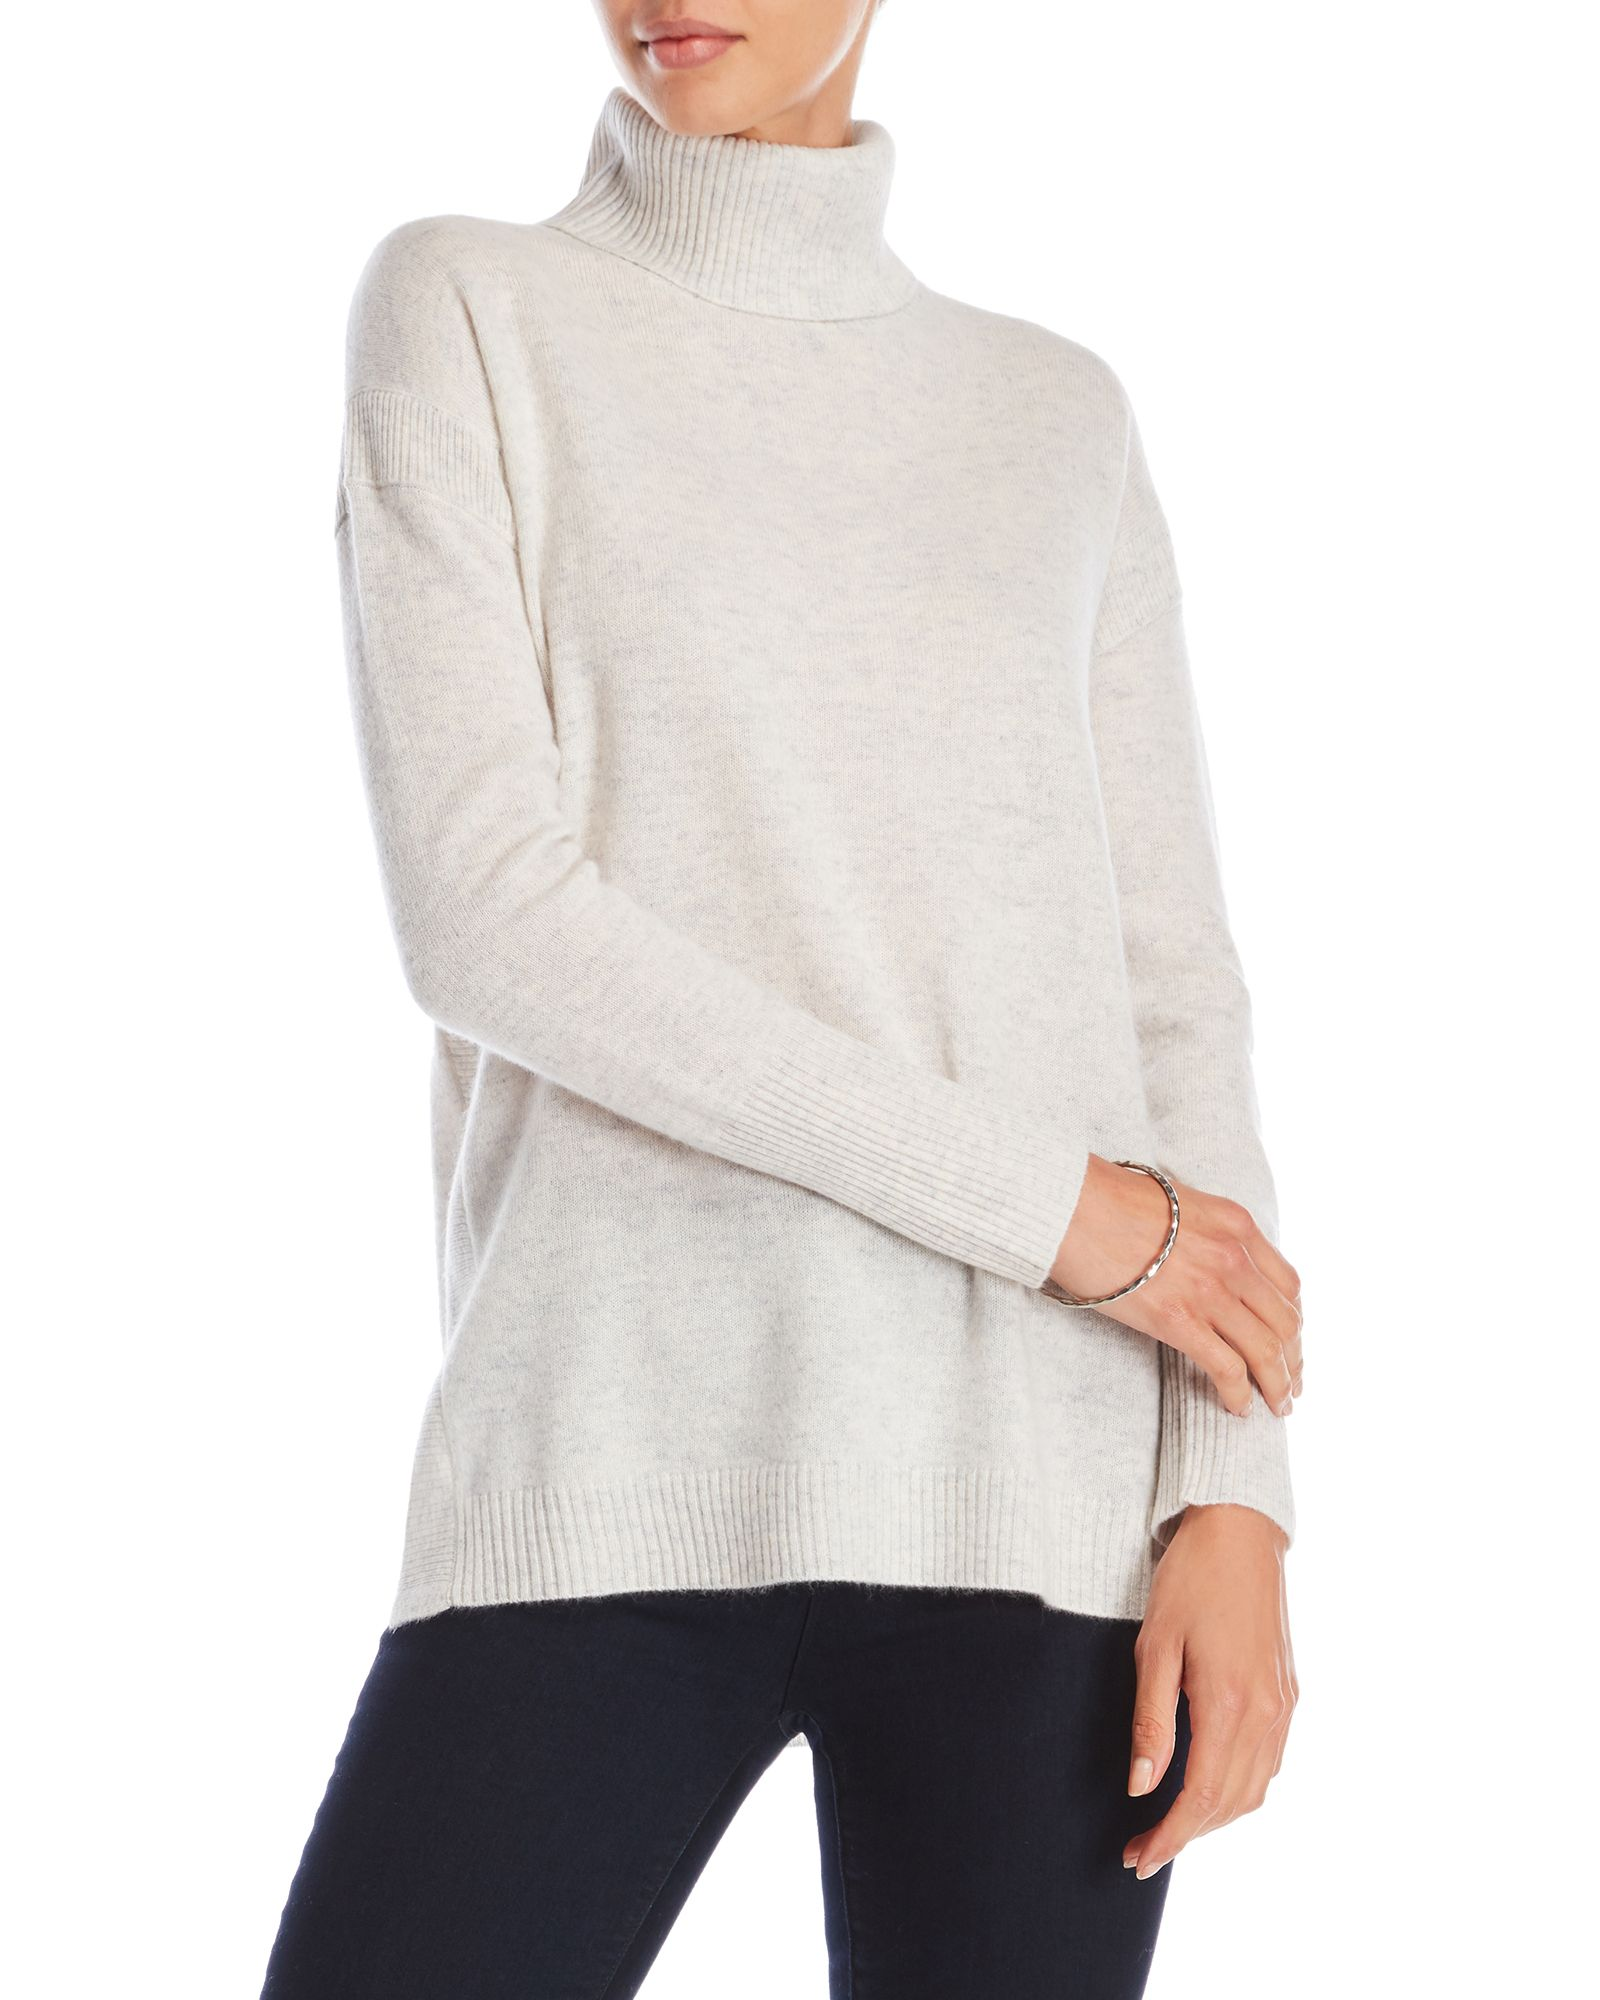 Ply Cashmere Cashmere Turtleneck Tunic Sweater | *Apparel ...